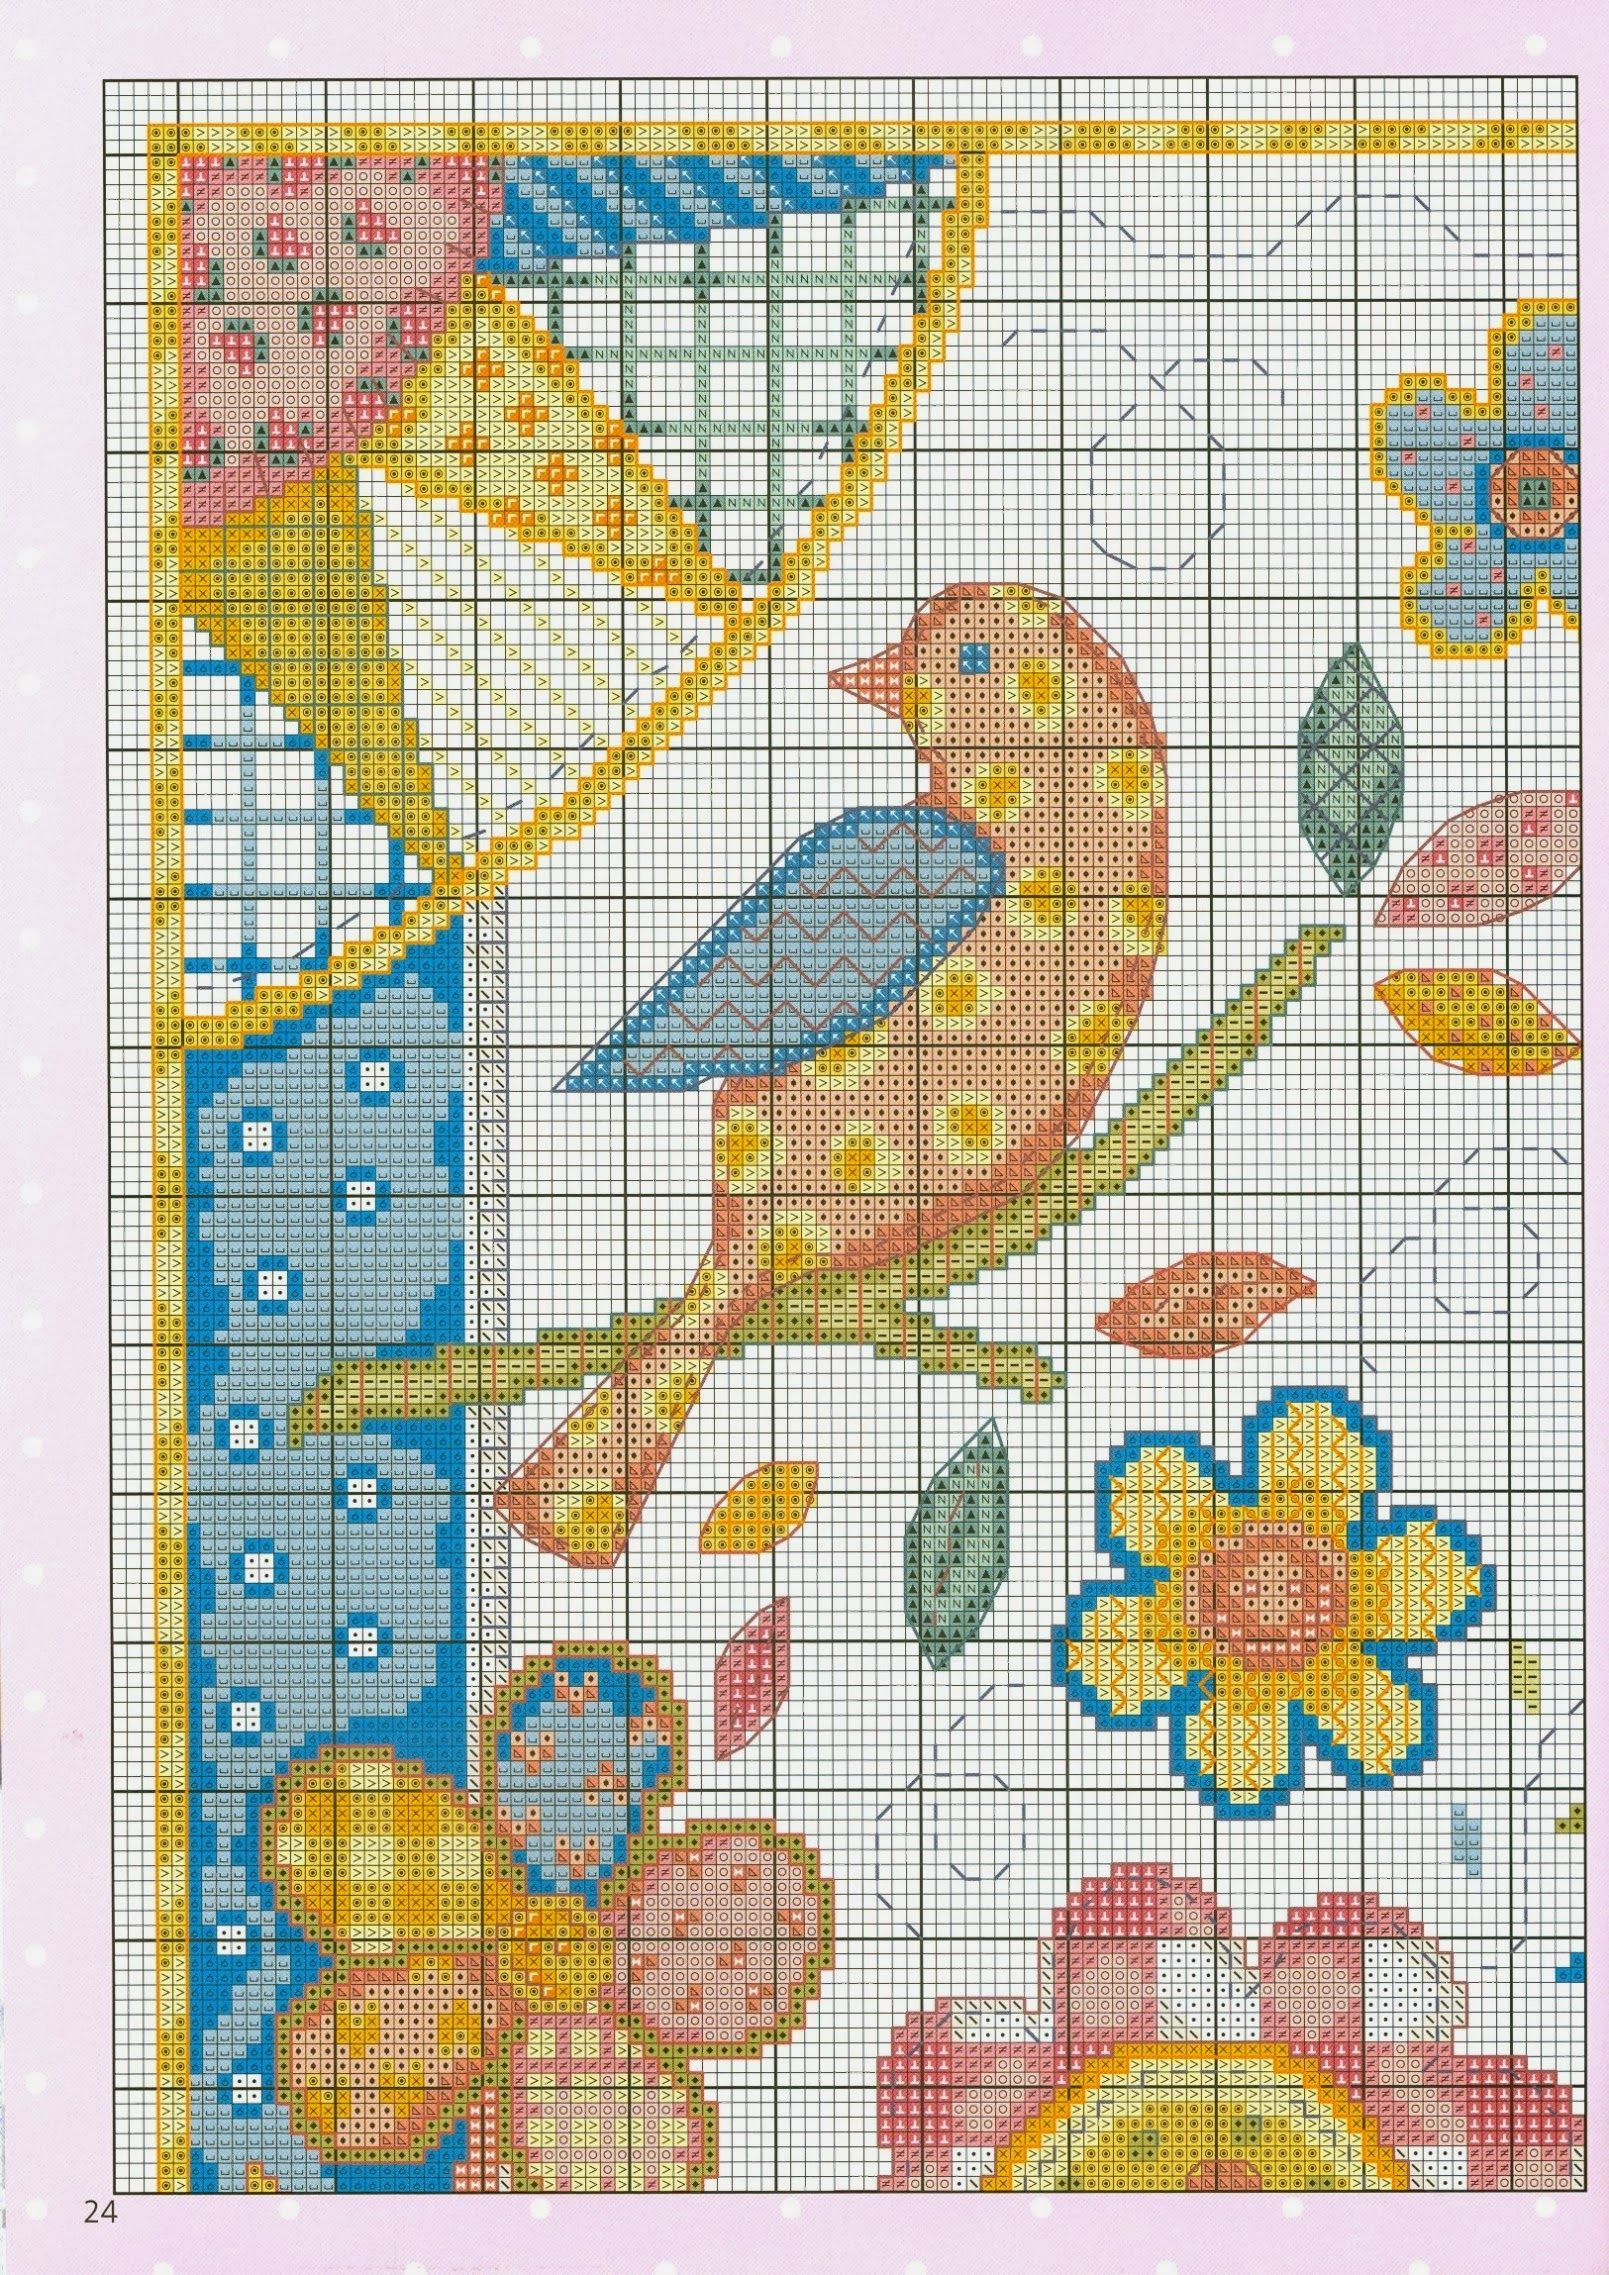 Cross stitch crossstitch xstitch pointdecruix pointdecroix needlework